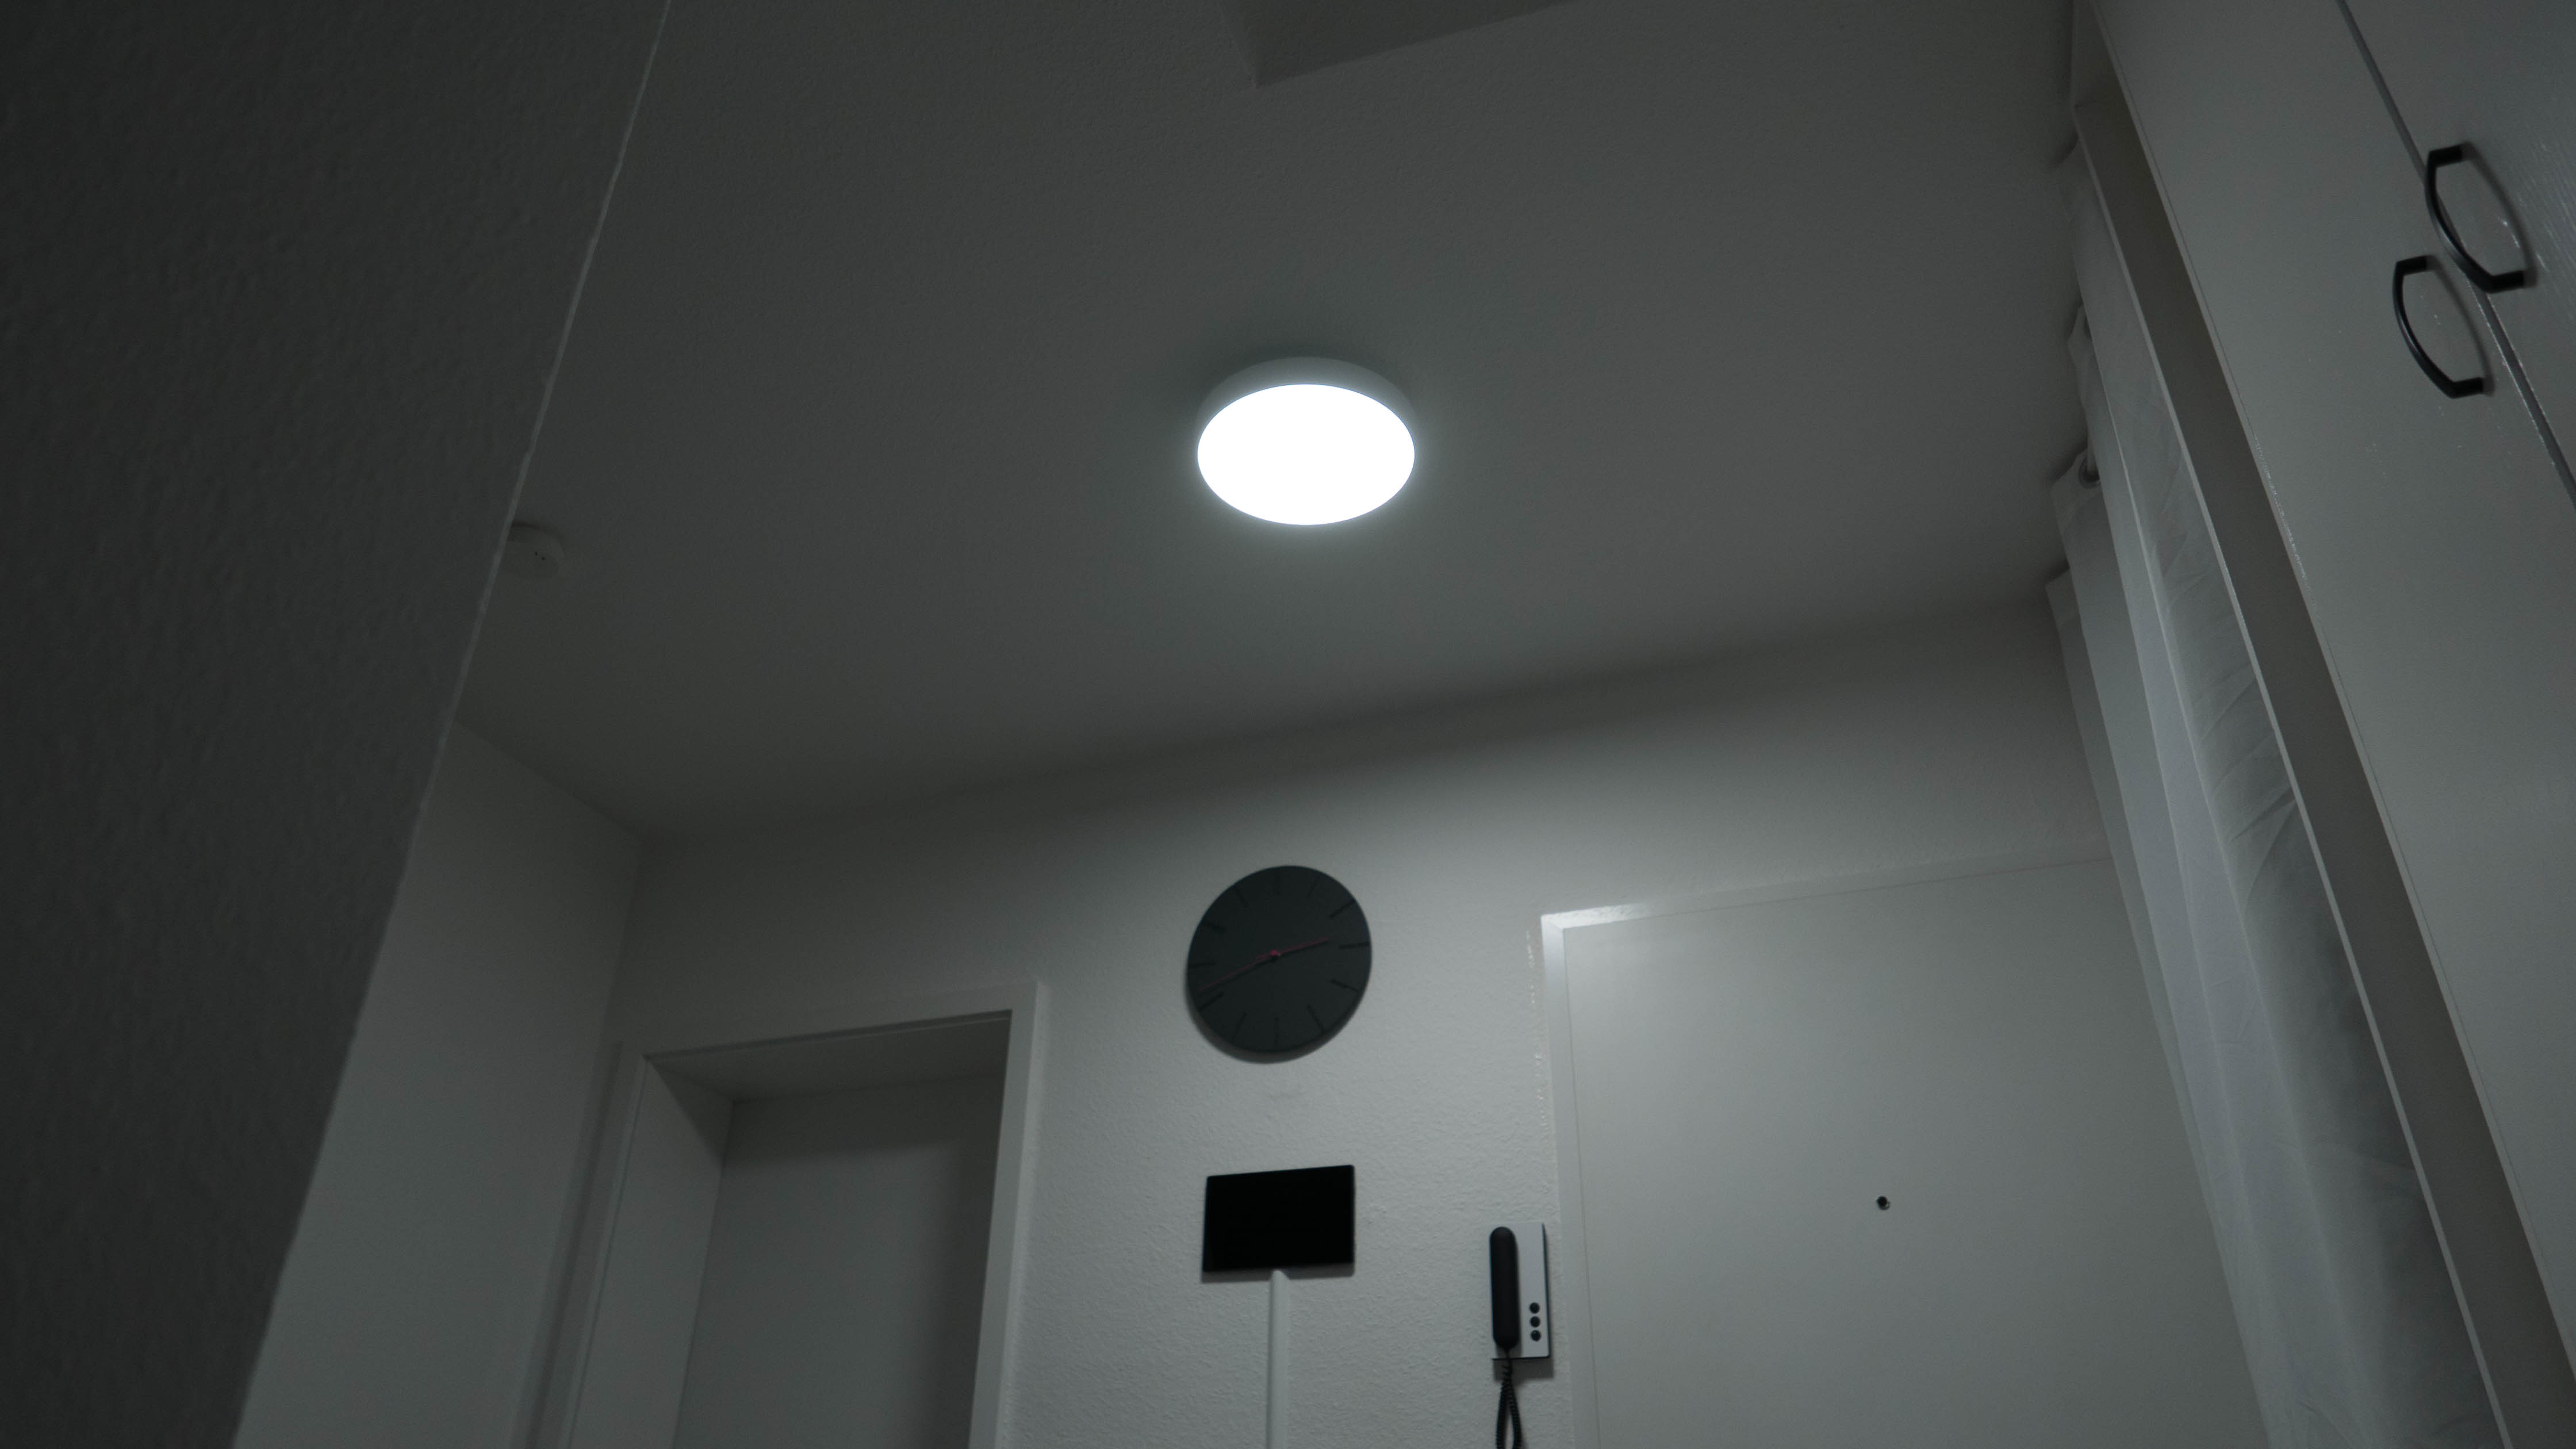 Xiaomi Yeelight LED Ceiling Light Farbtemperatur 4